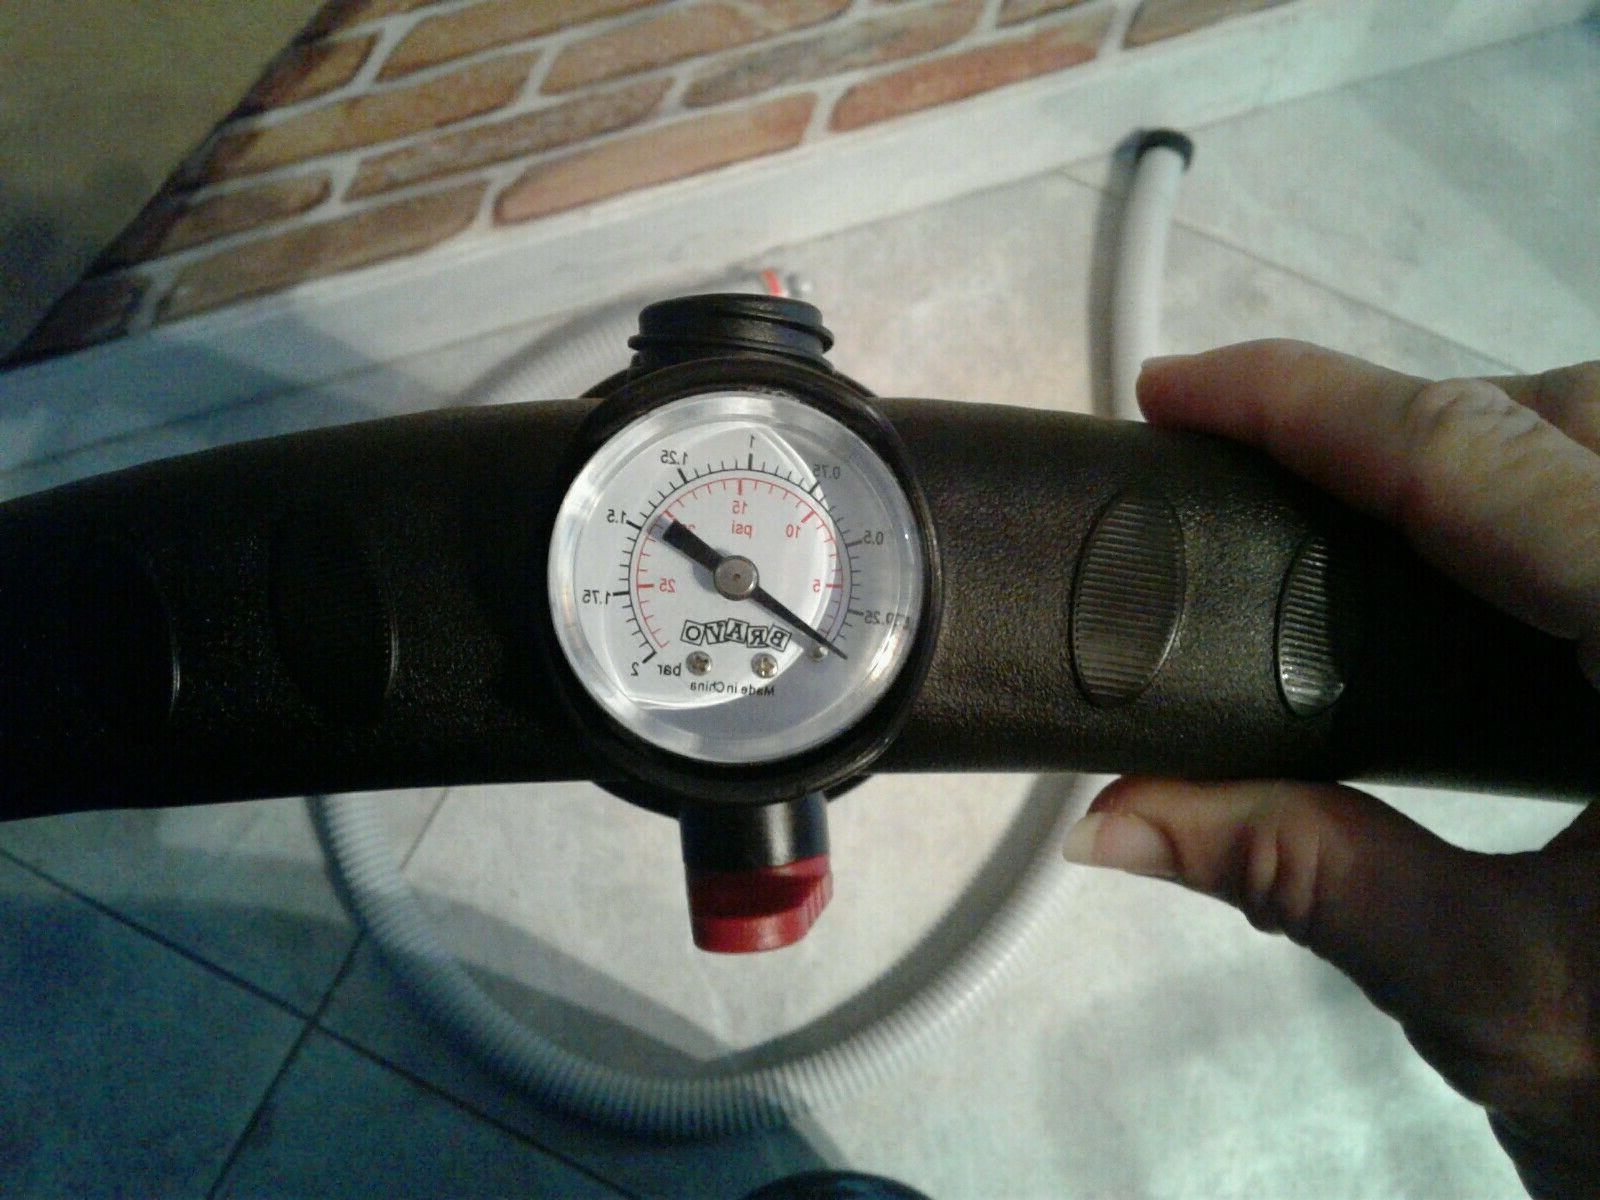 Brand New STYKS Pump For Inflatable Up SUP 15 PSI